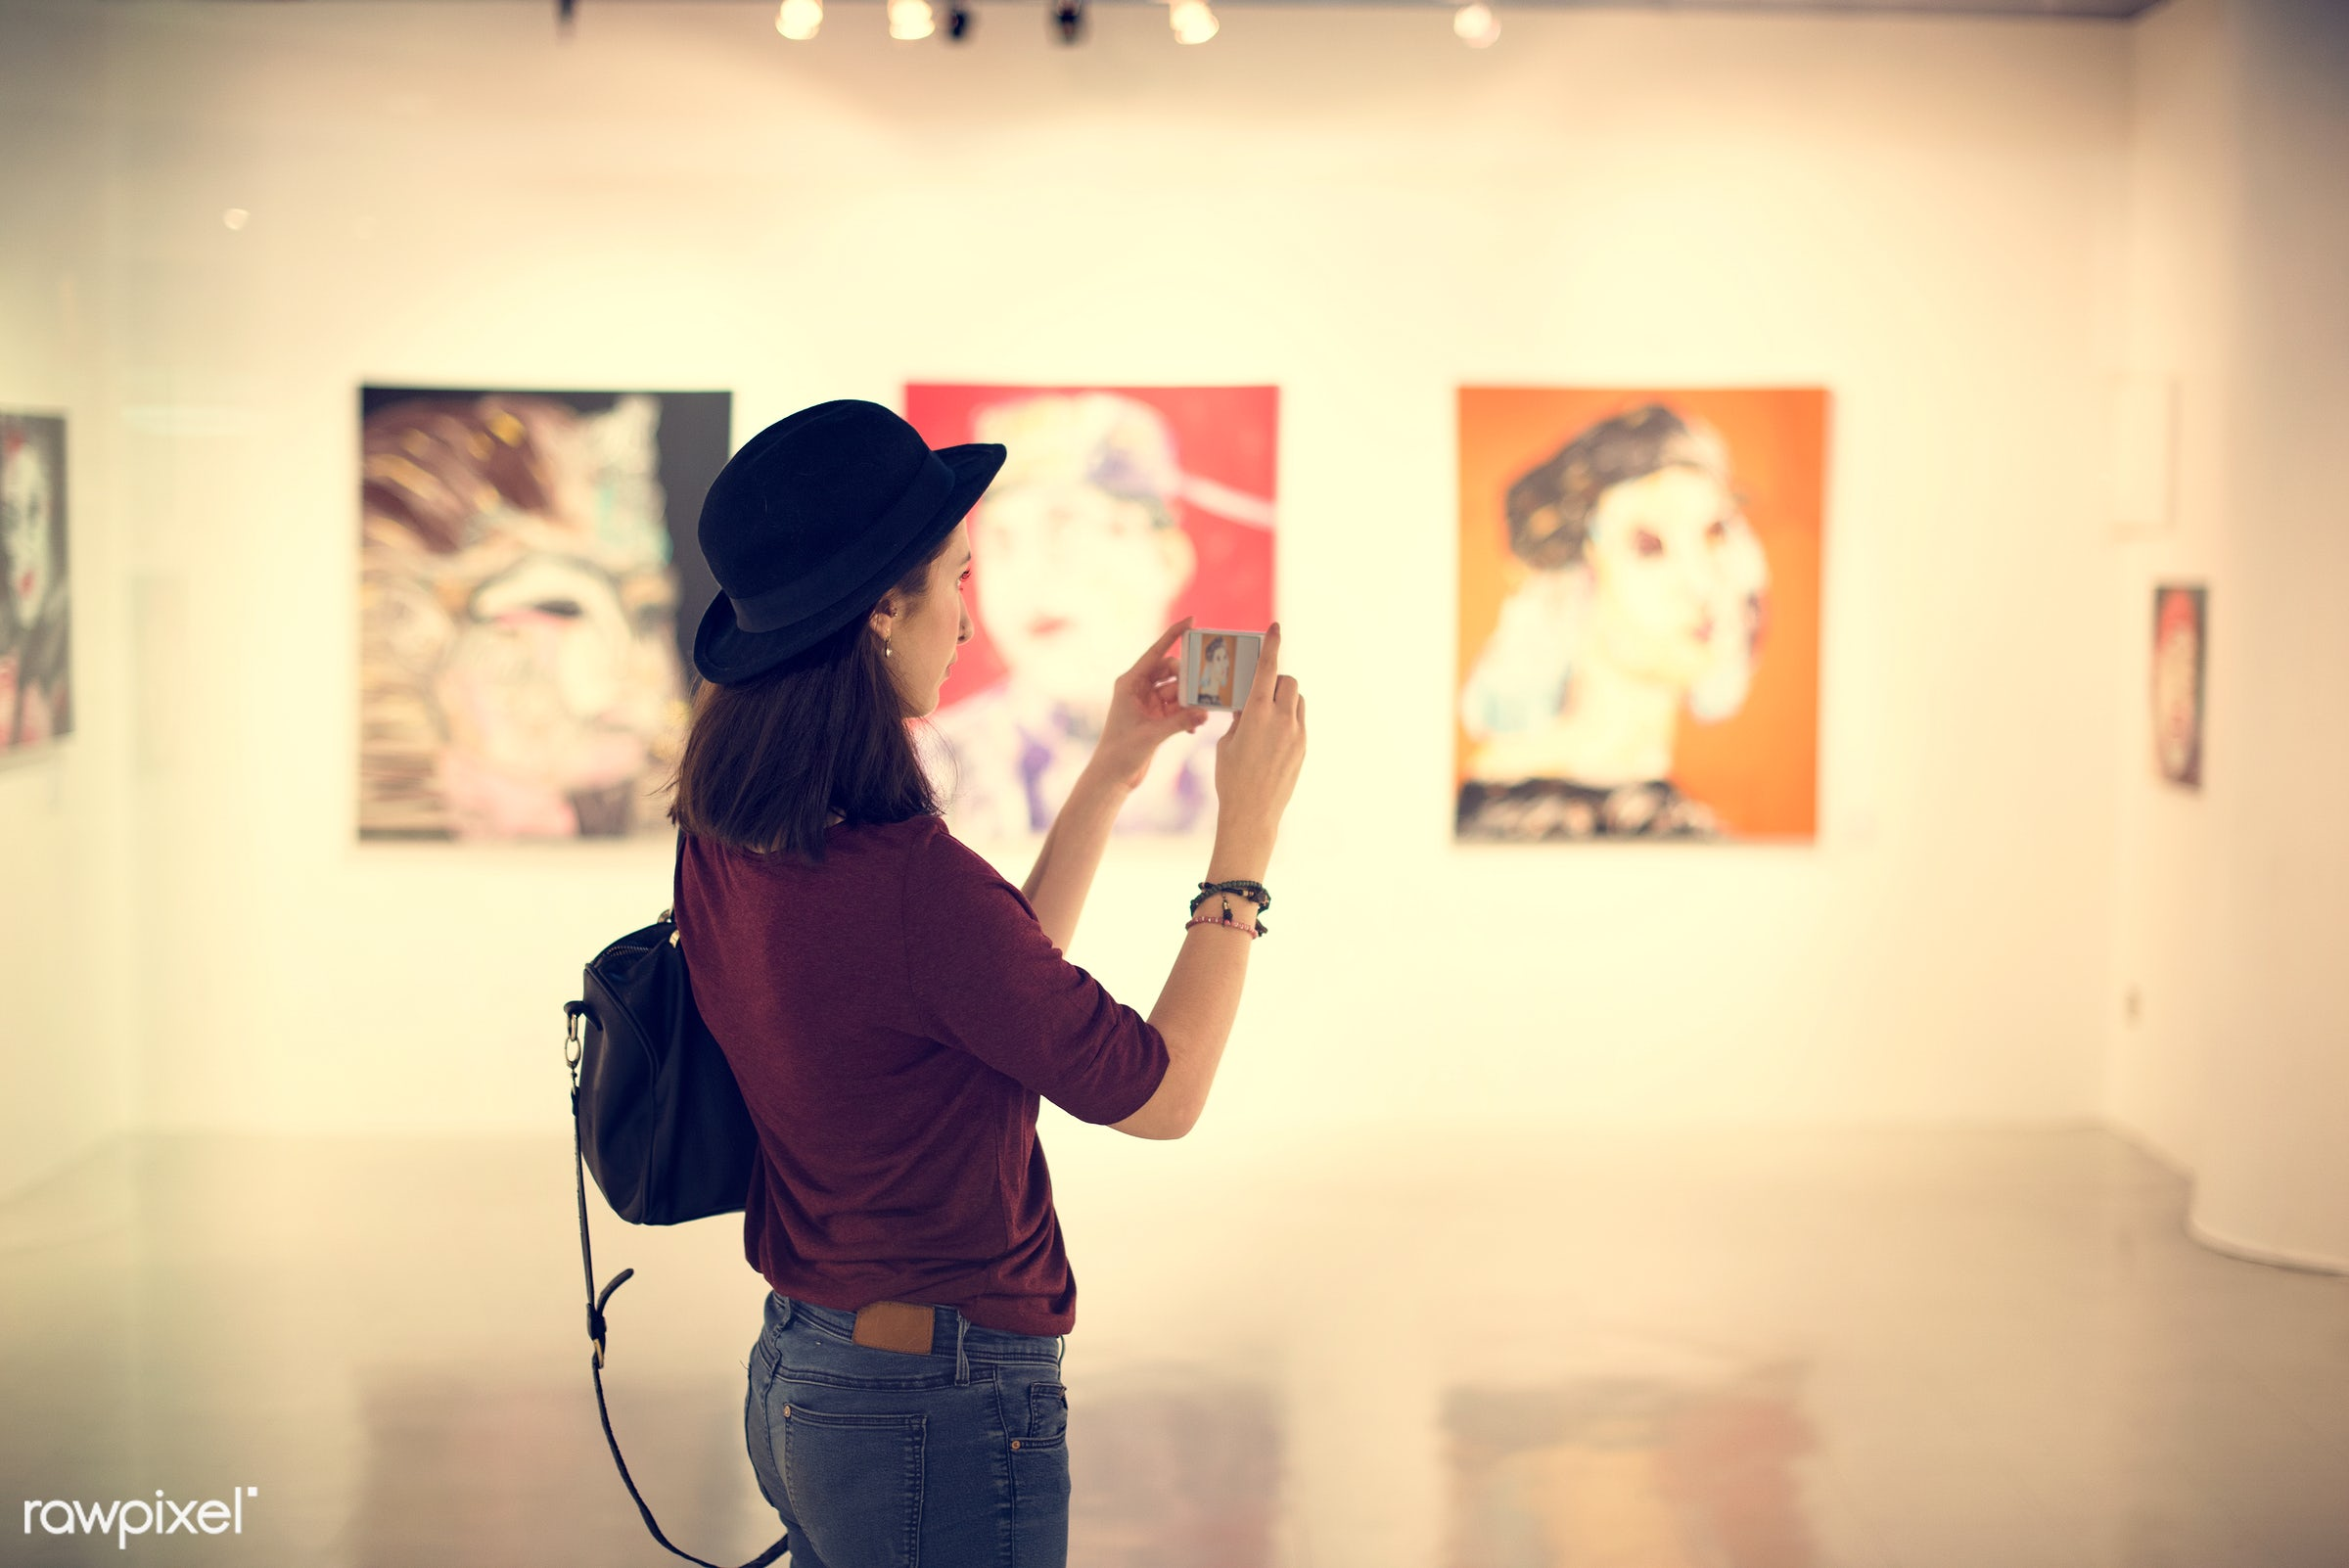 activity, admiration, art, artist, artistic, artwork, attractive, beautiful, camera, candid, casual, collection, color,...